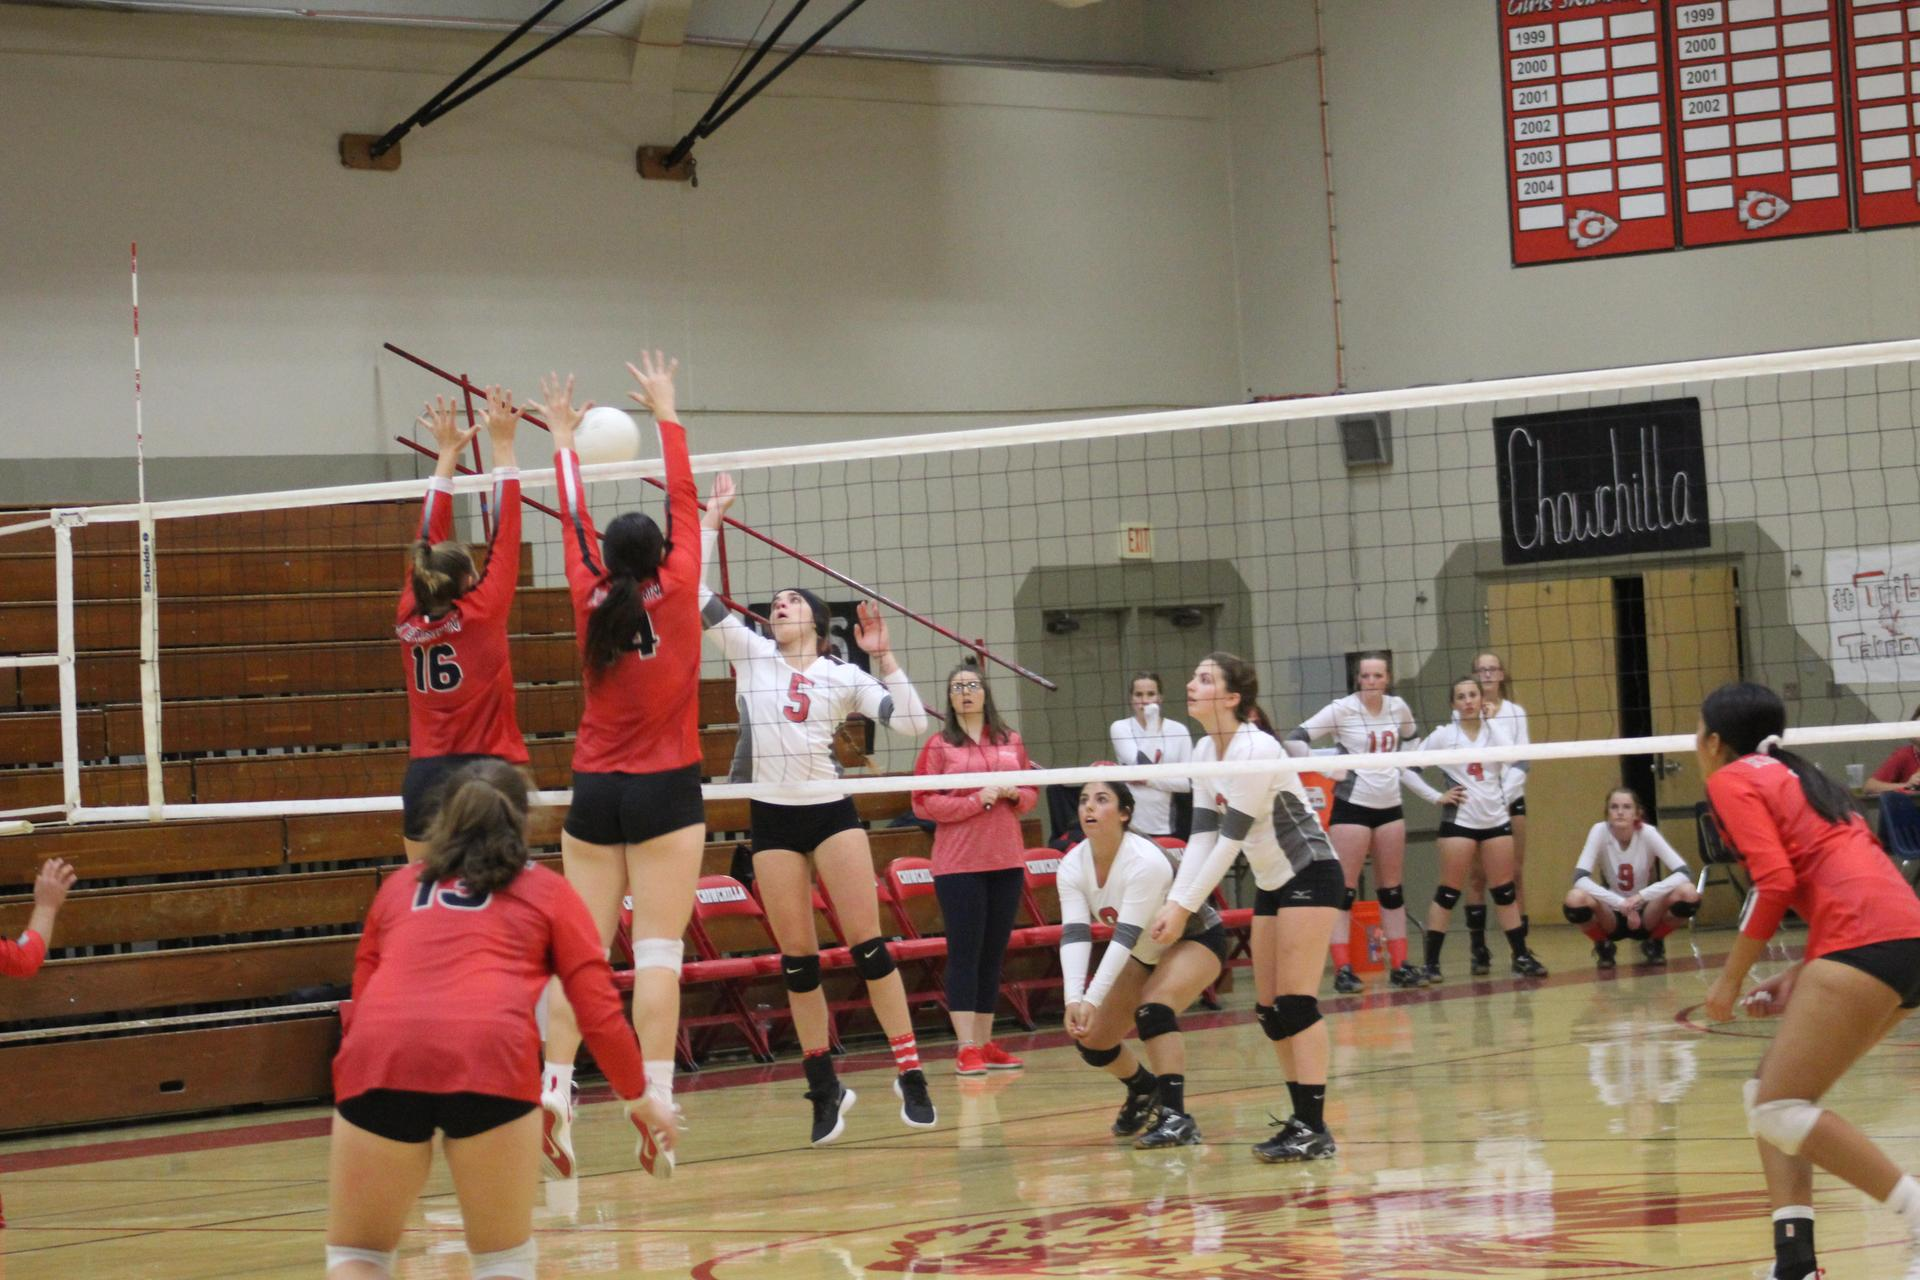 Varsity girls playing volleyball against Kerman